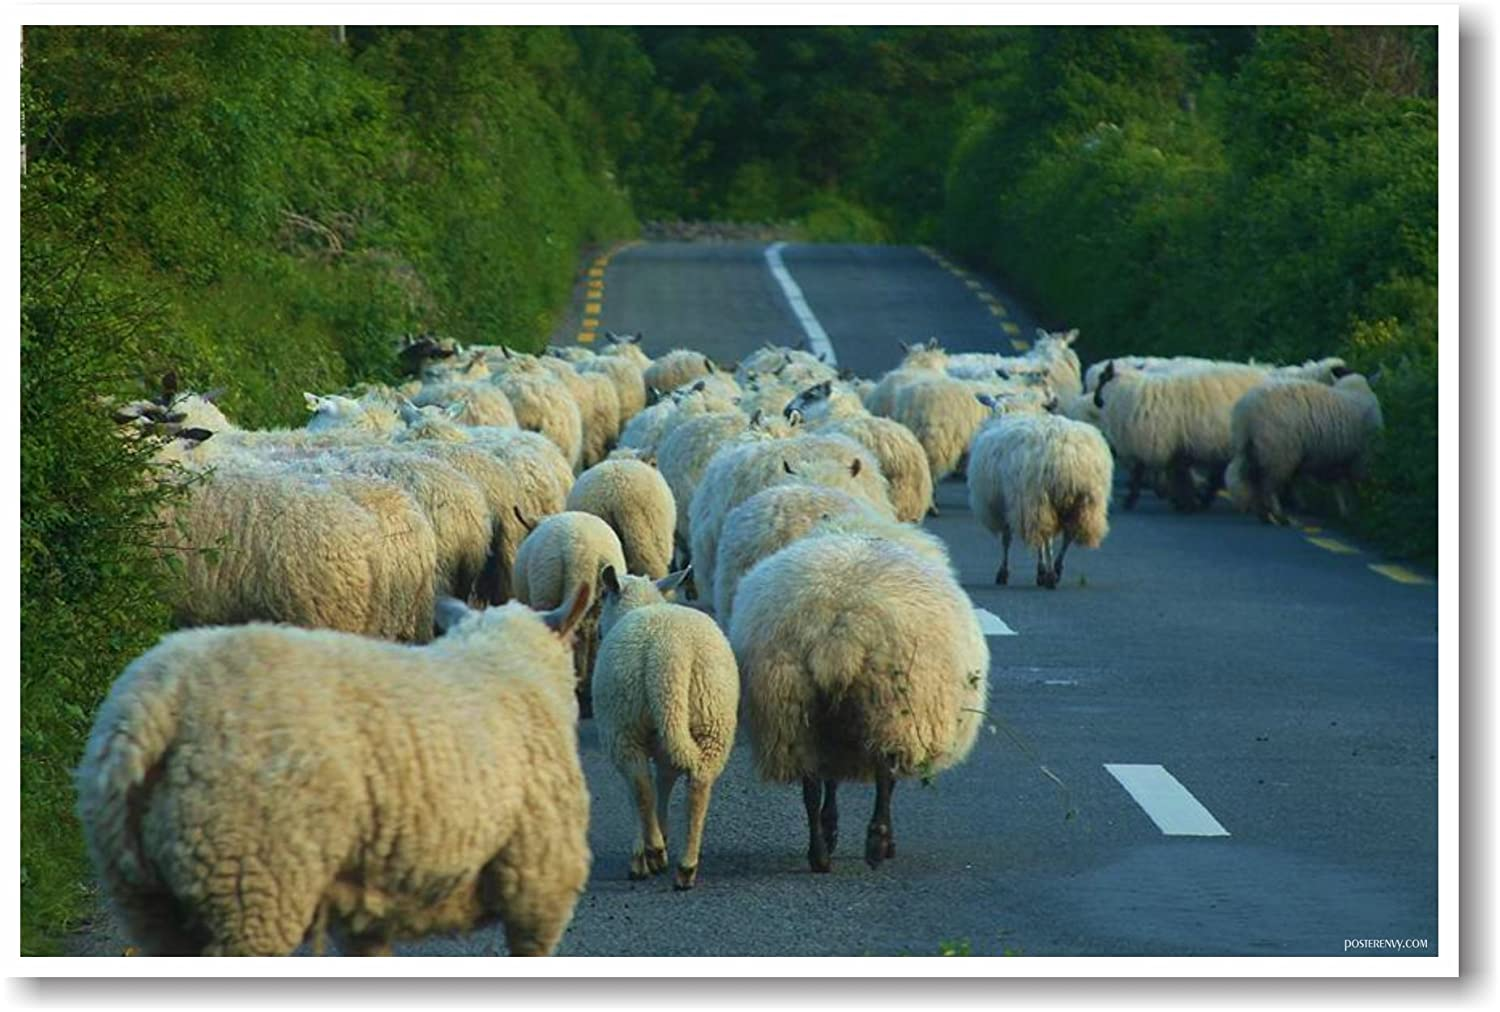 Sheep Crossing in Ireland